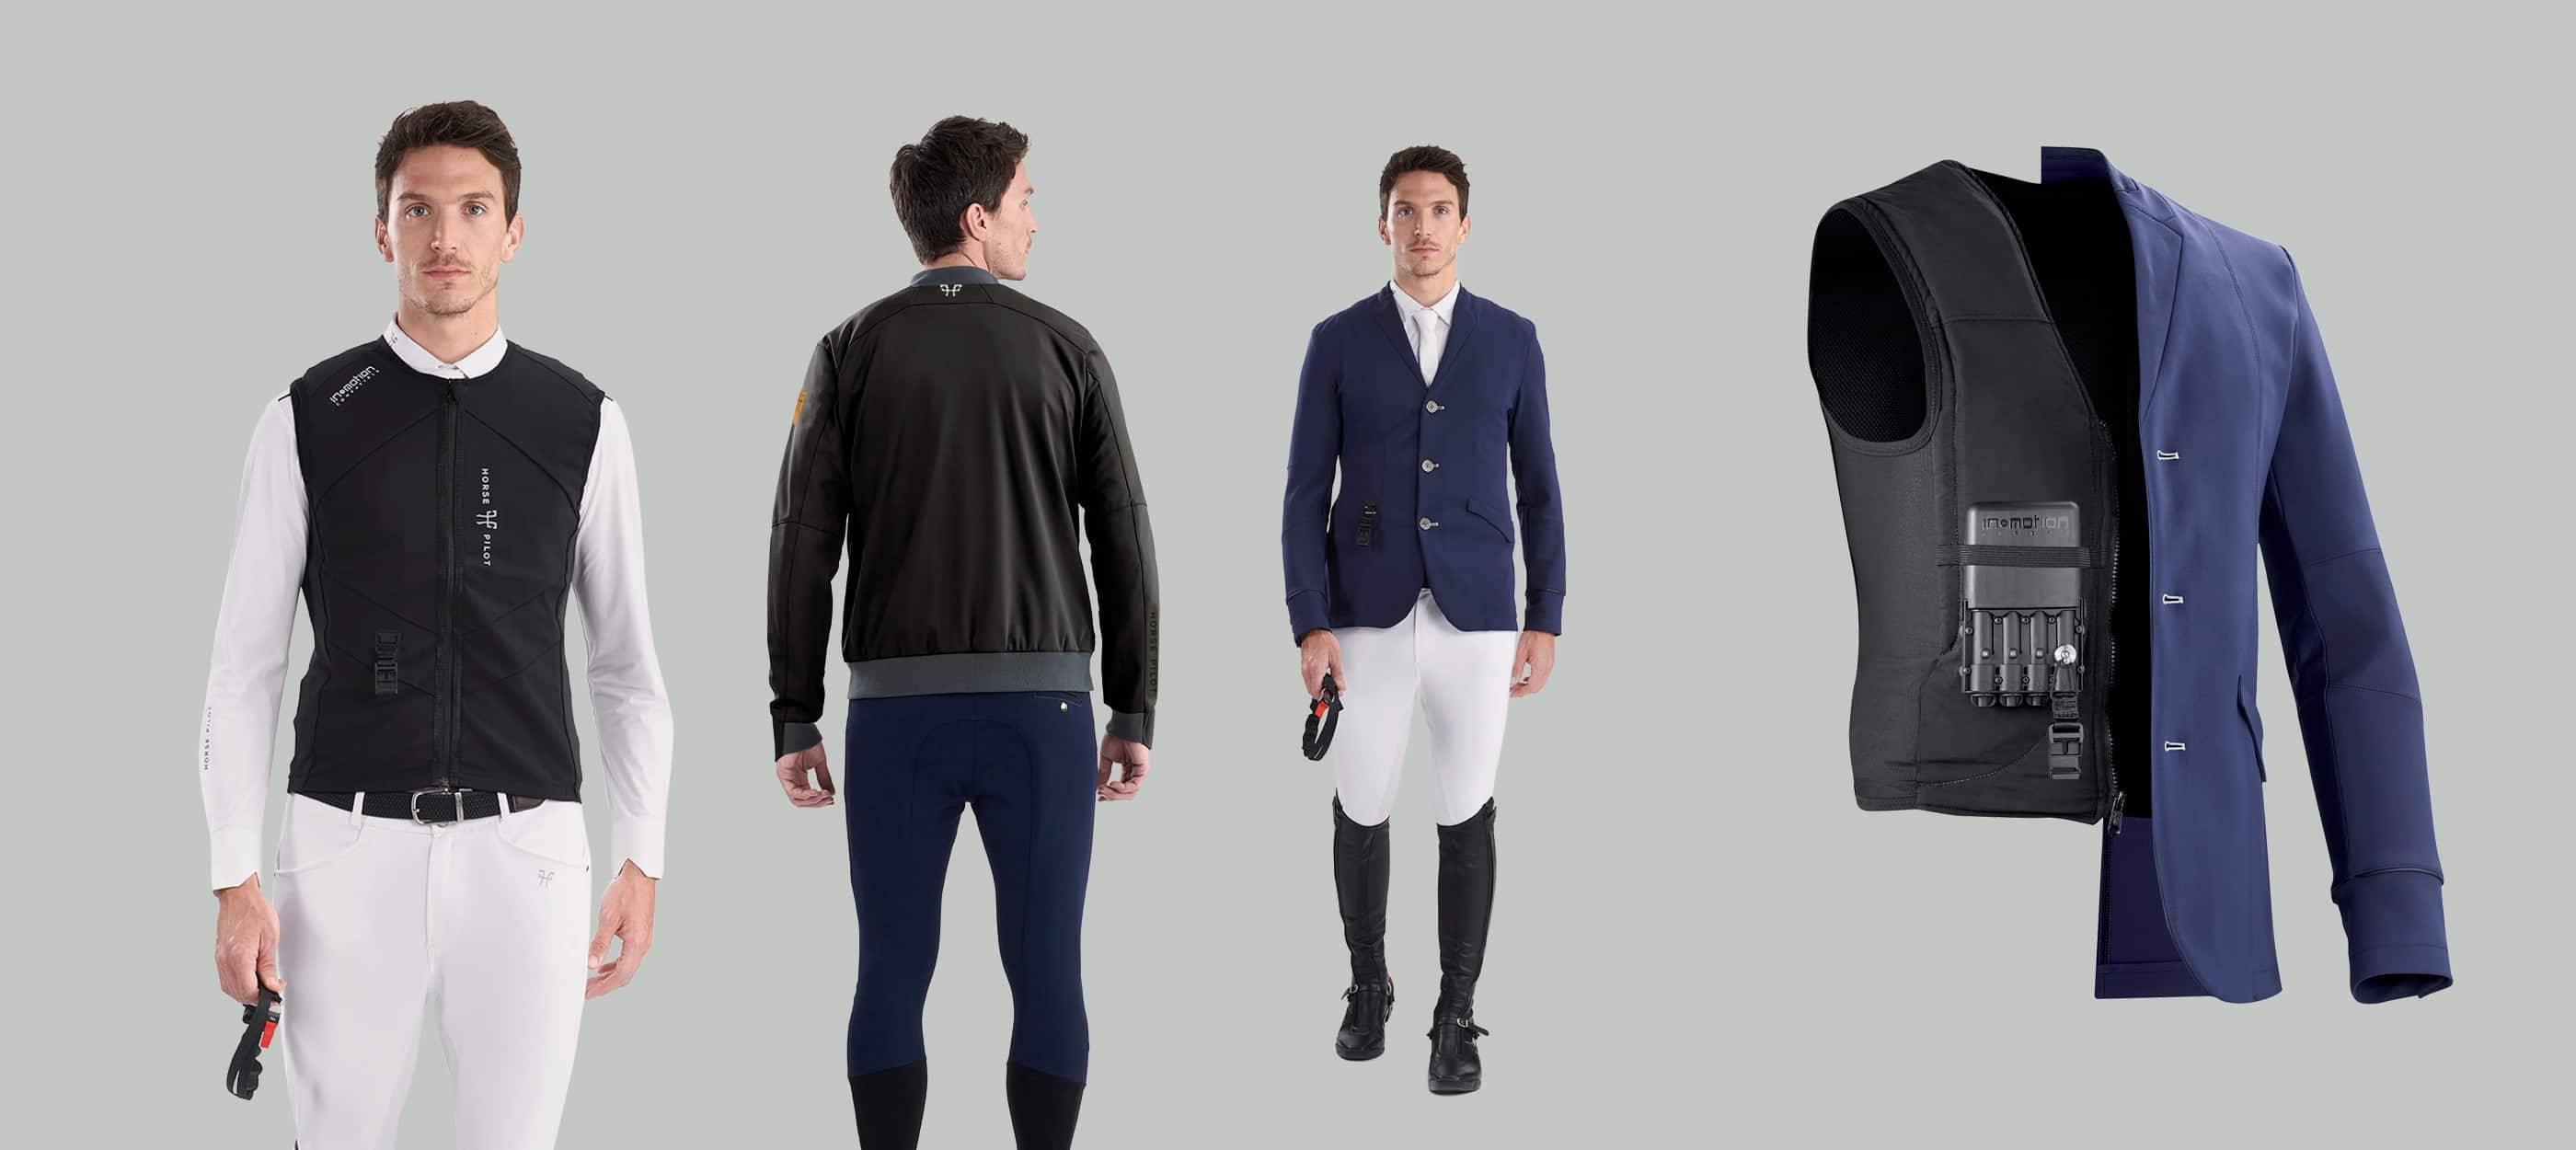 The Airbag compatible range including the AMP bomber and competition jacket for men